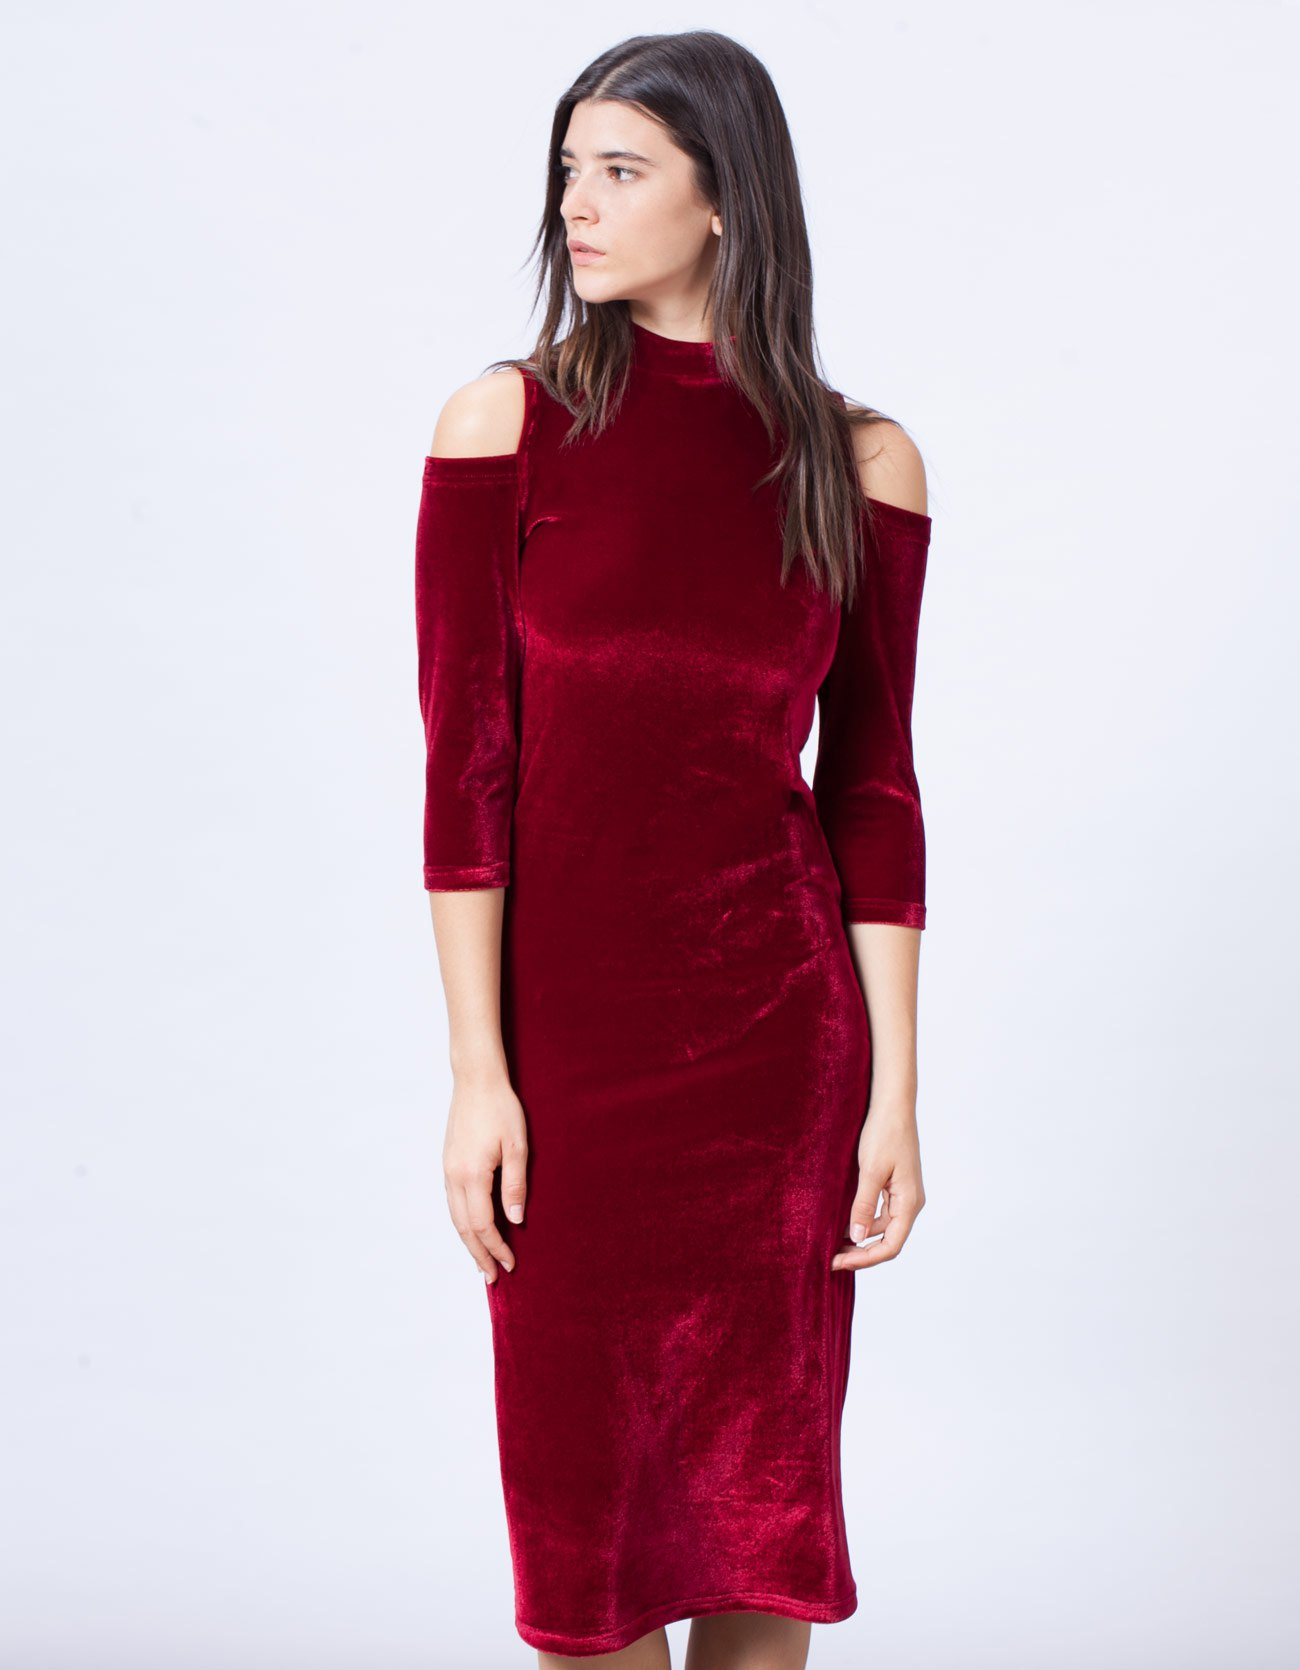 Stradivarius - Perfect for an Xmas party.